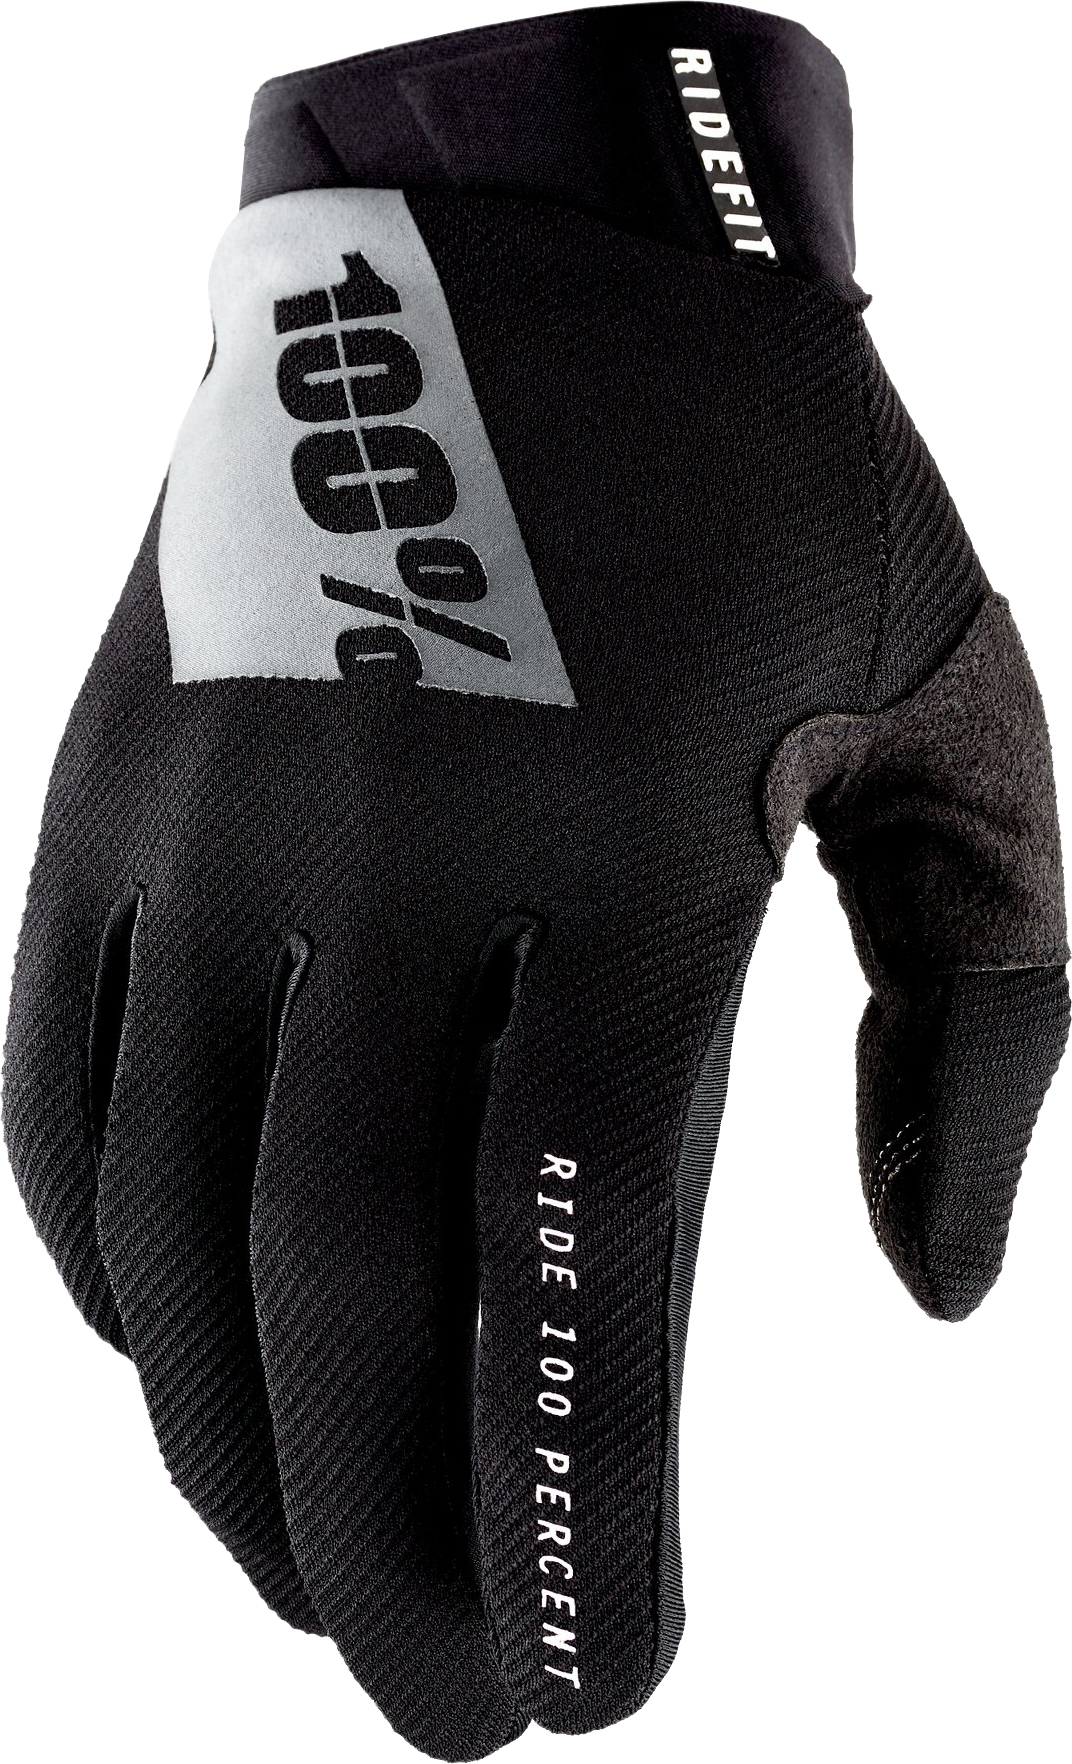 100% - Ridefit | cycling glove